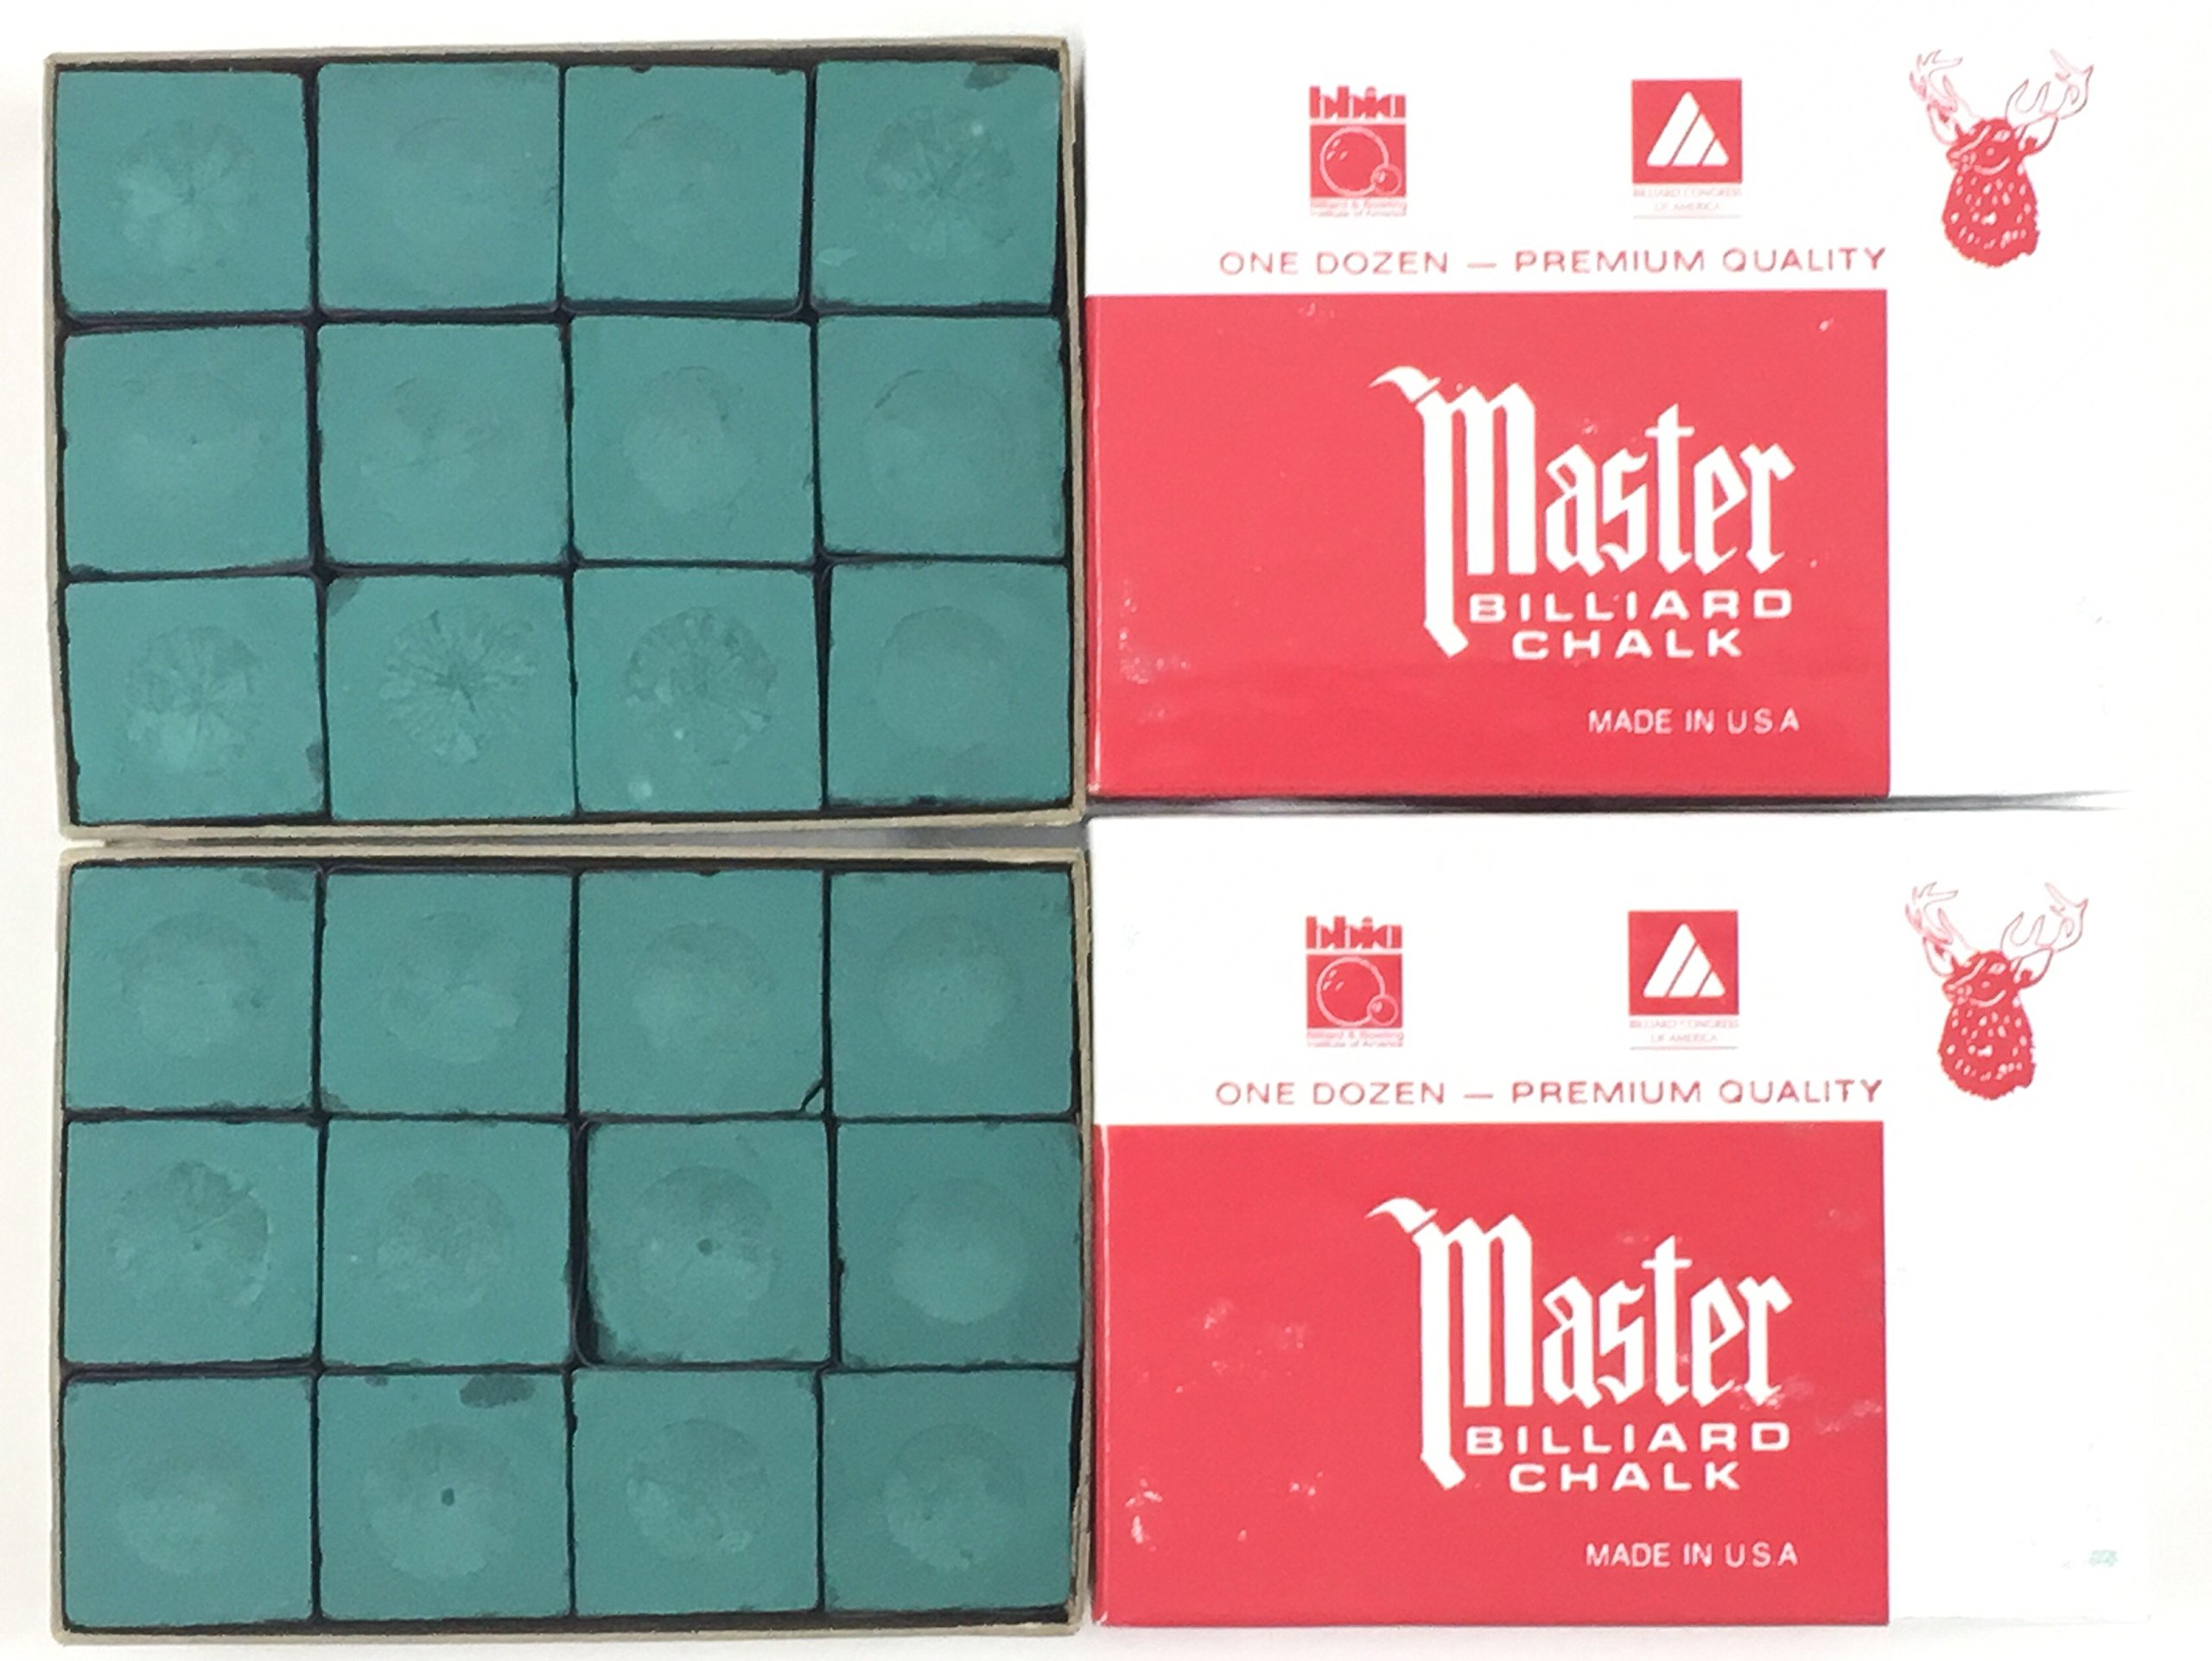 Made in the USA - 2 Boxes of Master Chalk - 24 Pieces for Pool Cues and Billiards Sticks Tips (Forest Green) by Master Chalk (Image #1)